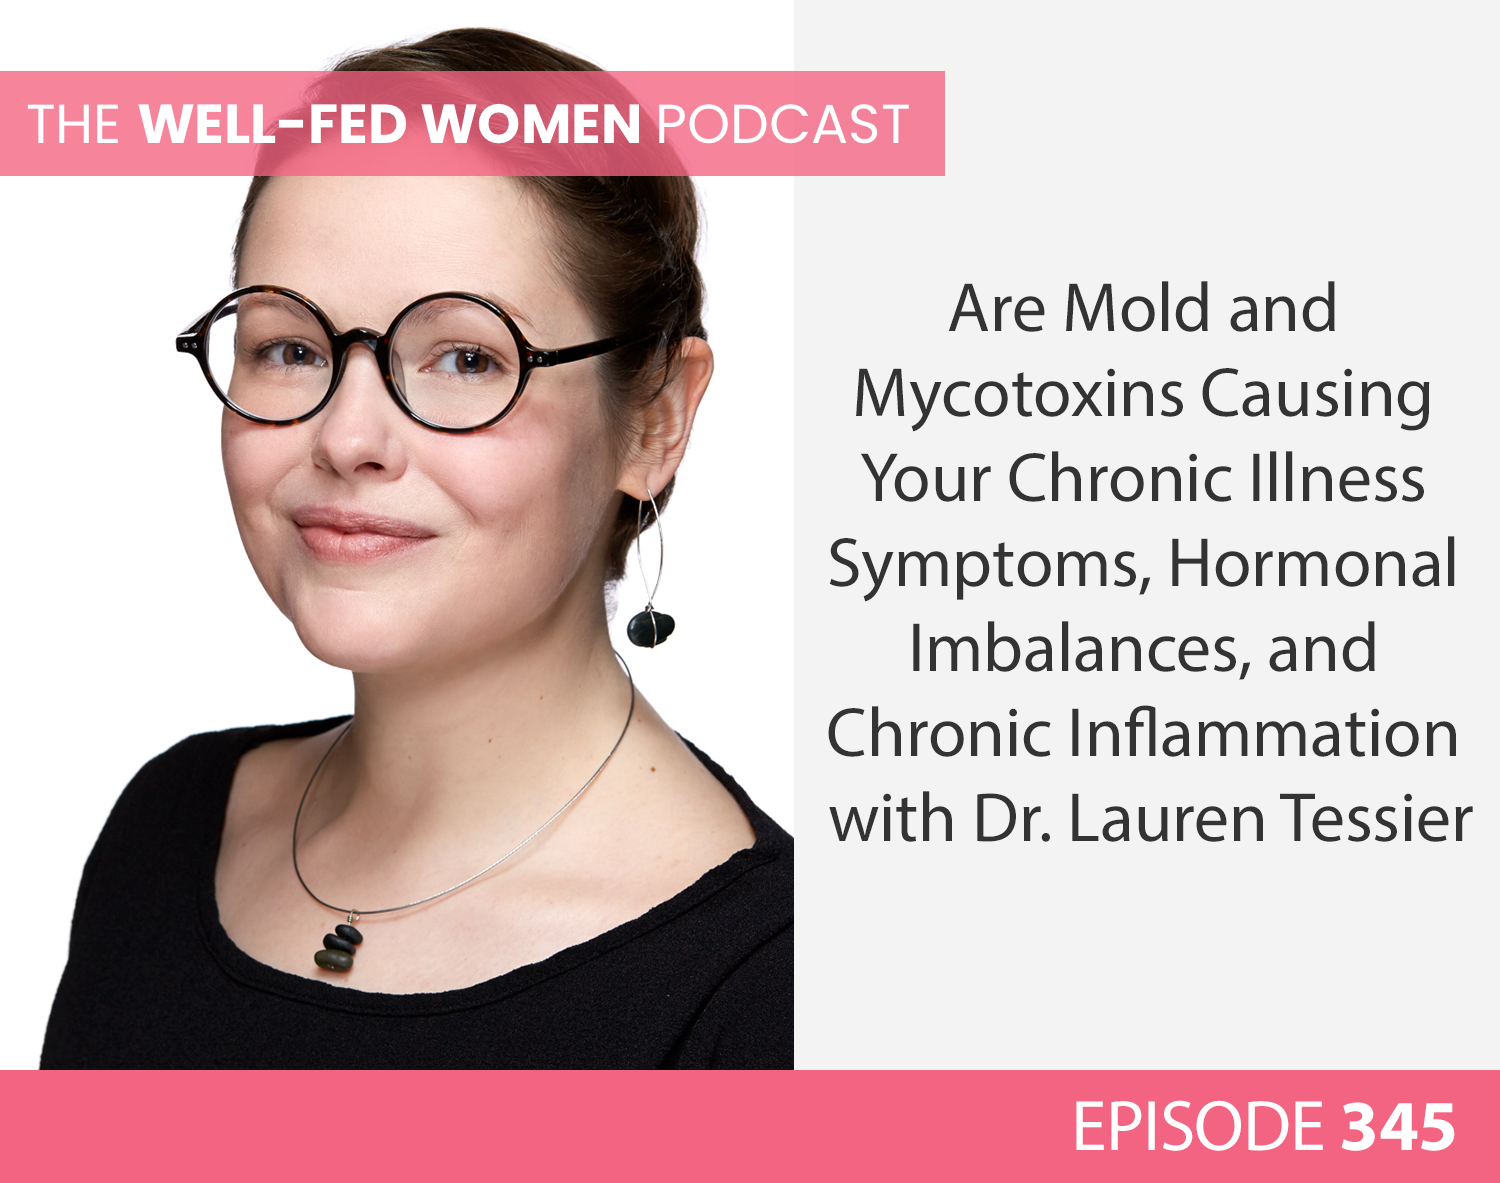 #345: How Mold and Mycotoxins Cause Chronic Illness Symptoms, Hormonal Imbalances, and Chronic Inflammation with Dr. Lauren Tessier